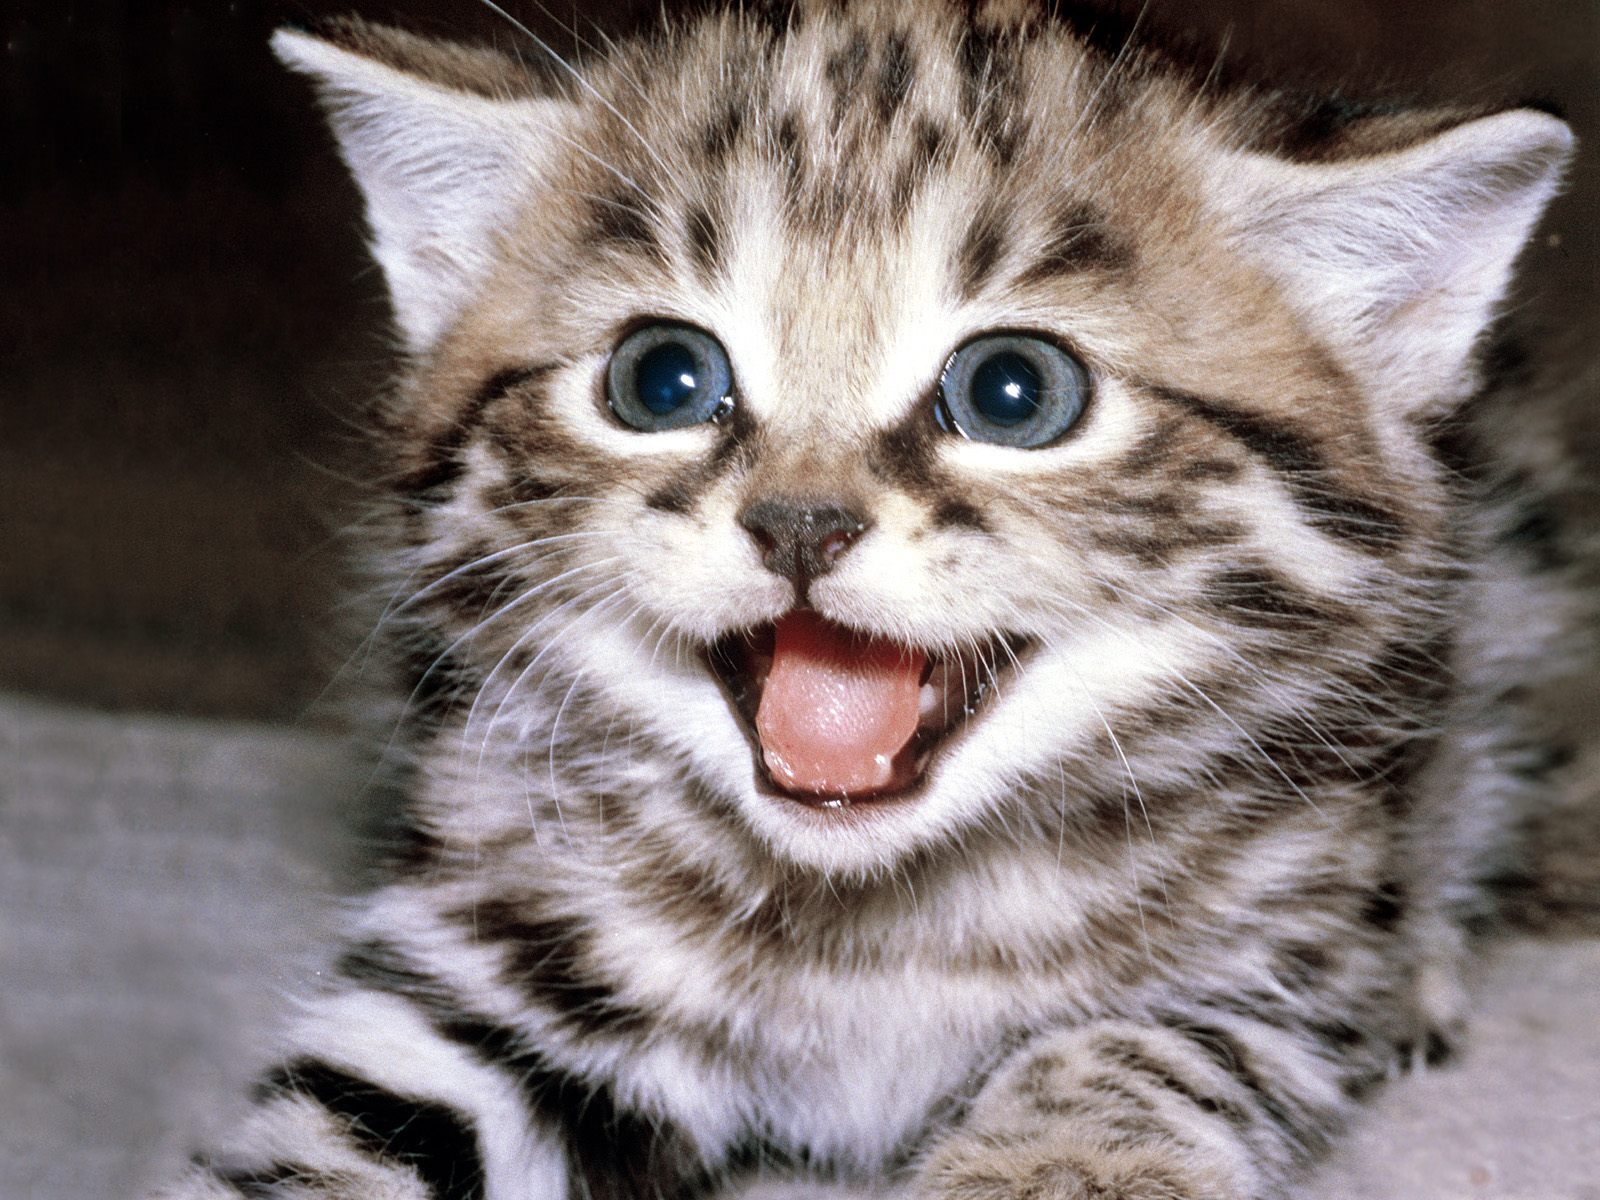 Cute Babies Free Download Wallpapers Tiptop 3d Amp Hd Wallpapers Collection Beautiful Cats